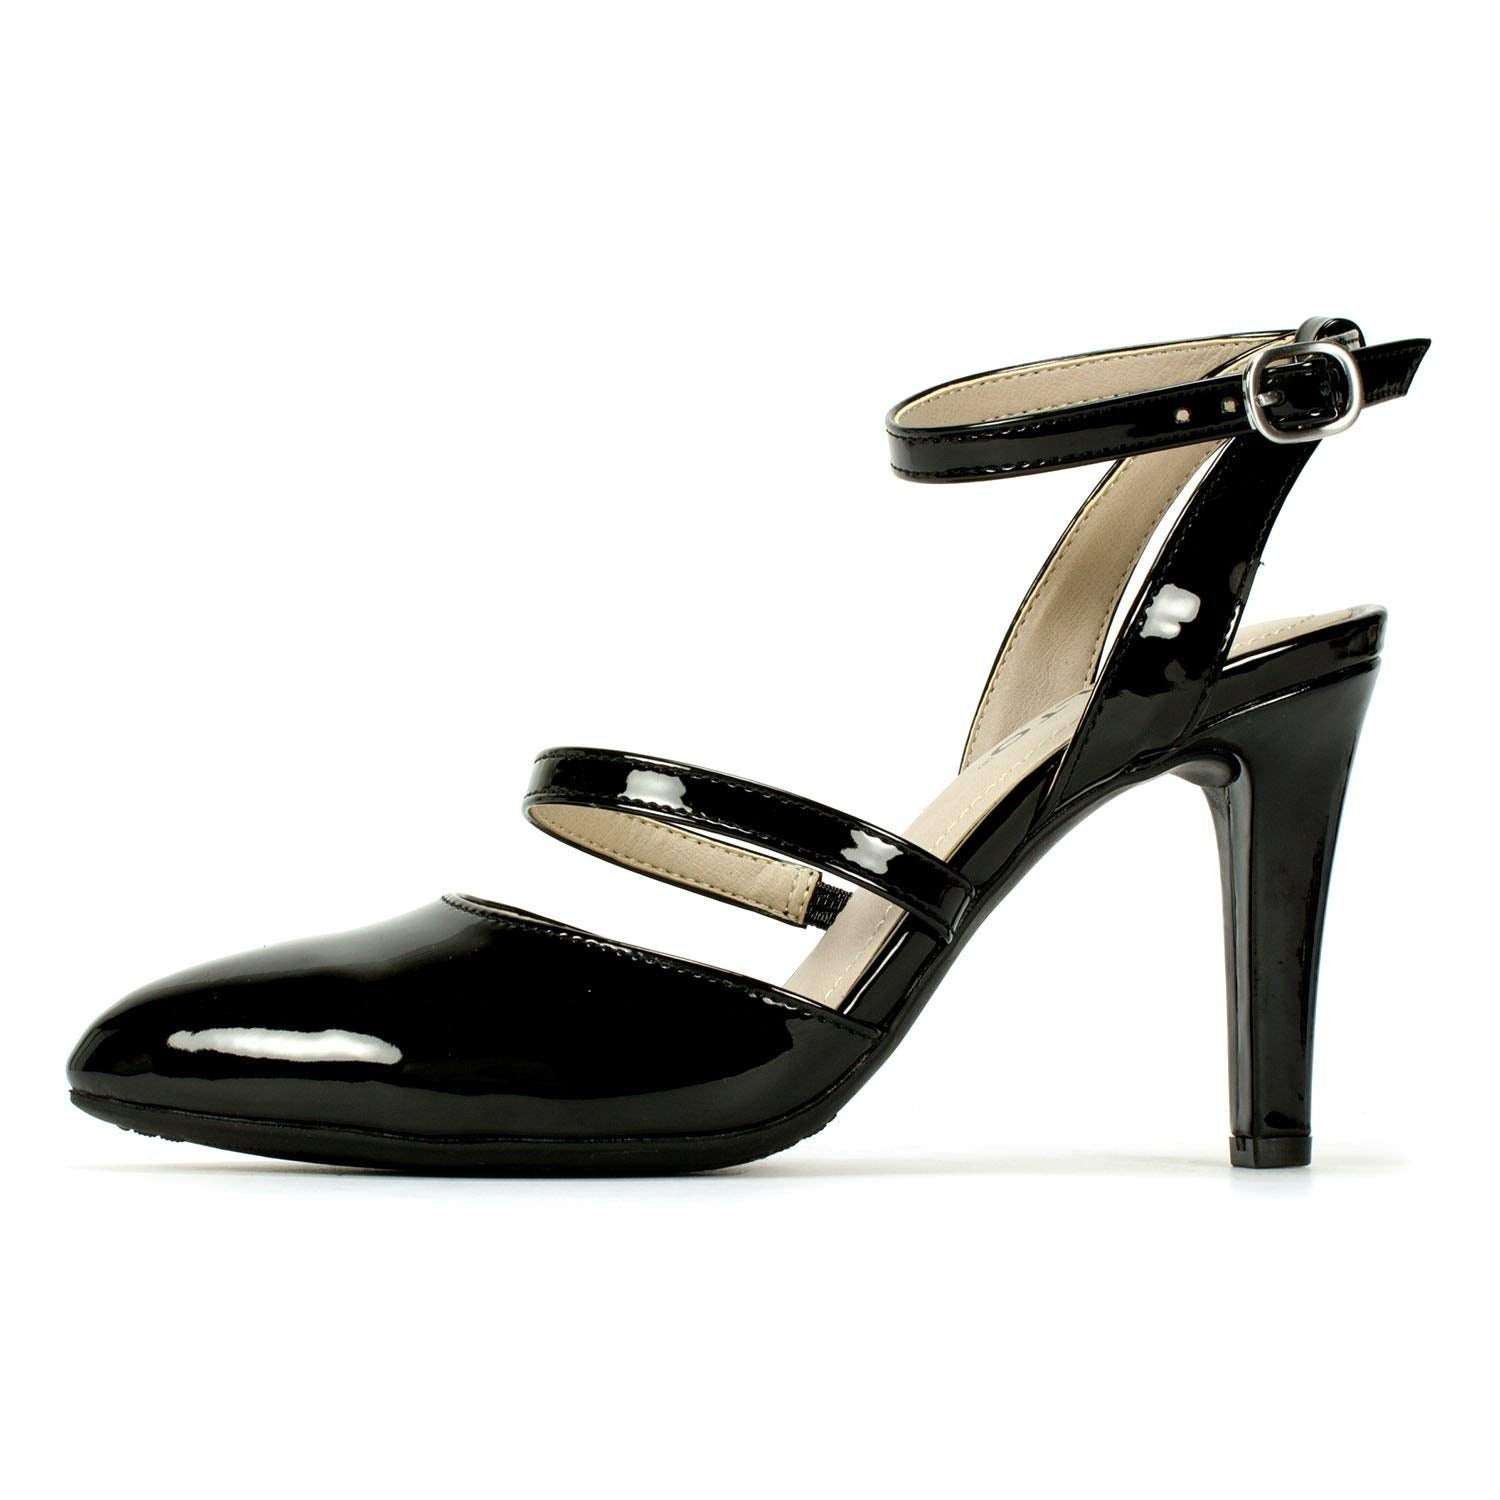 b373dd8d4d0d Shop Rialto Womens Calina Almond Toe Special Occasion Slingback Sandals -  Free Shipping On Orders Over  45 - Overstock.com - 25455068